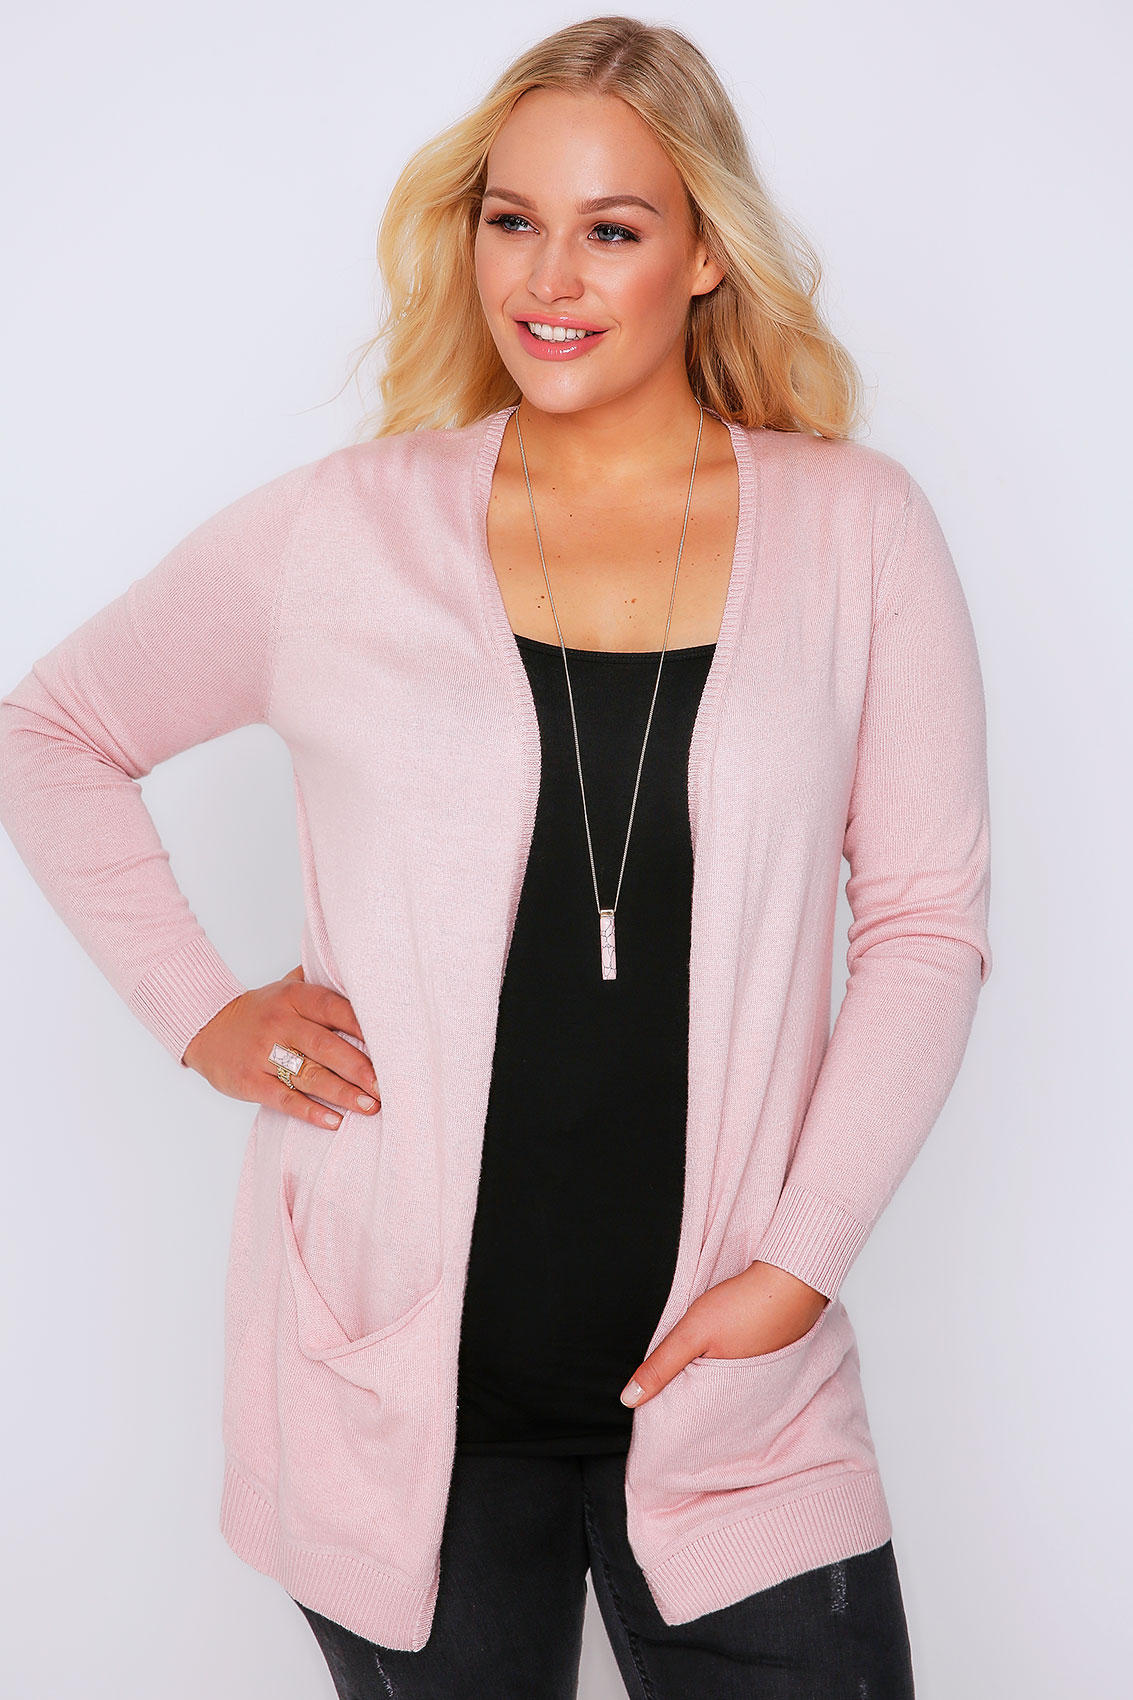 Light pink crew neck cardigan Save. £ More colour options. Nine by Savannah Miller Dark pink pointelle jumper Save. Was £ Now £ Oasis Pale pink 'Alexa' perfect crew neck jumper Save. £ Phase Eight Pink bettine balloon sleeve knit top Save. Was £